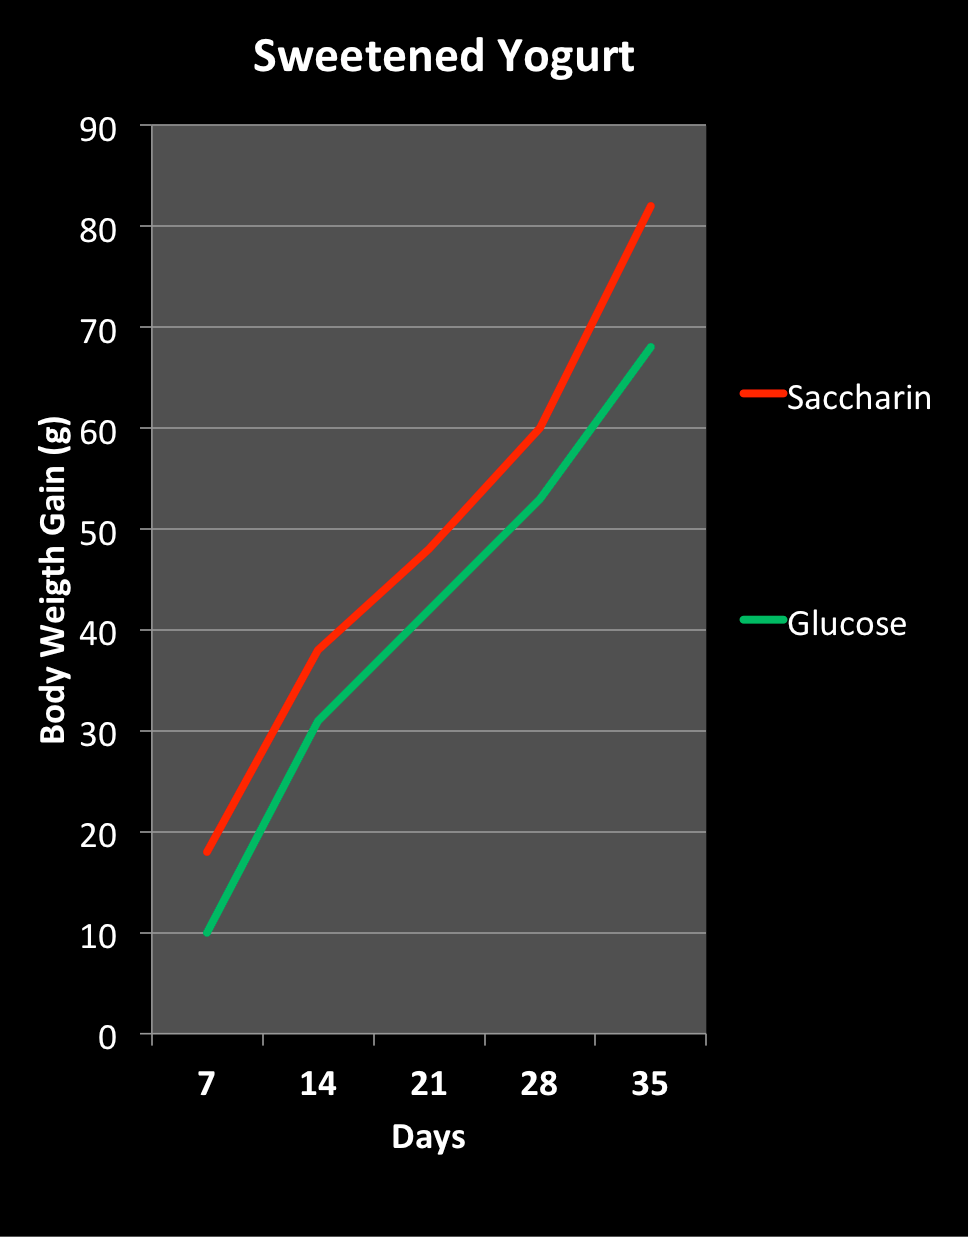 chart showing weight gain from sweetened yogurt